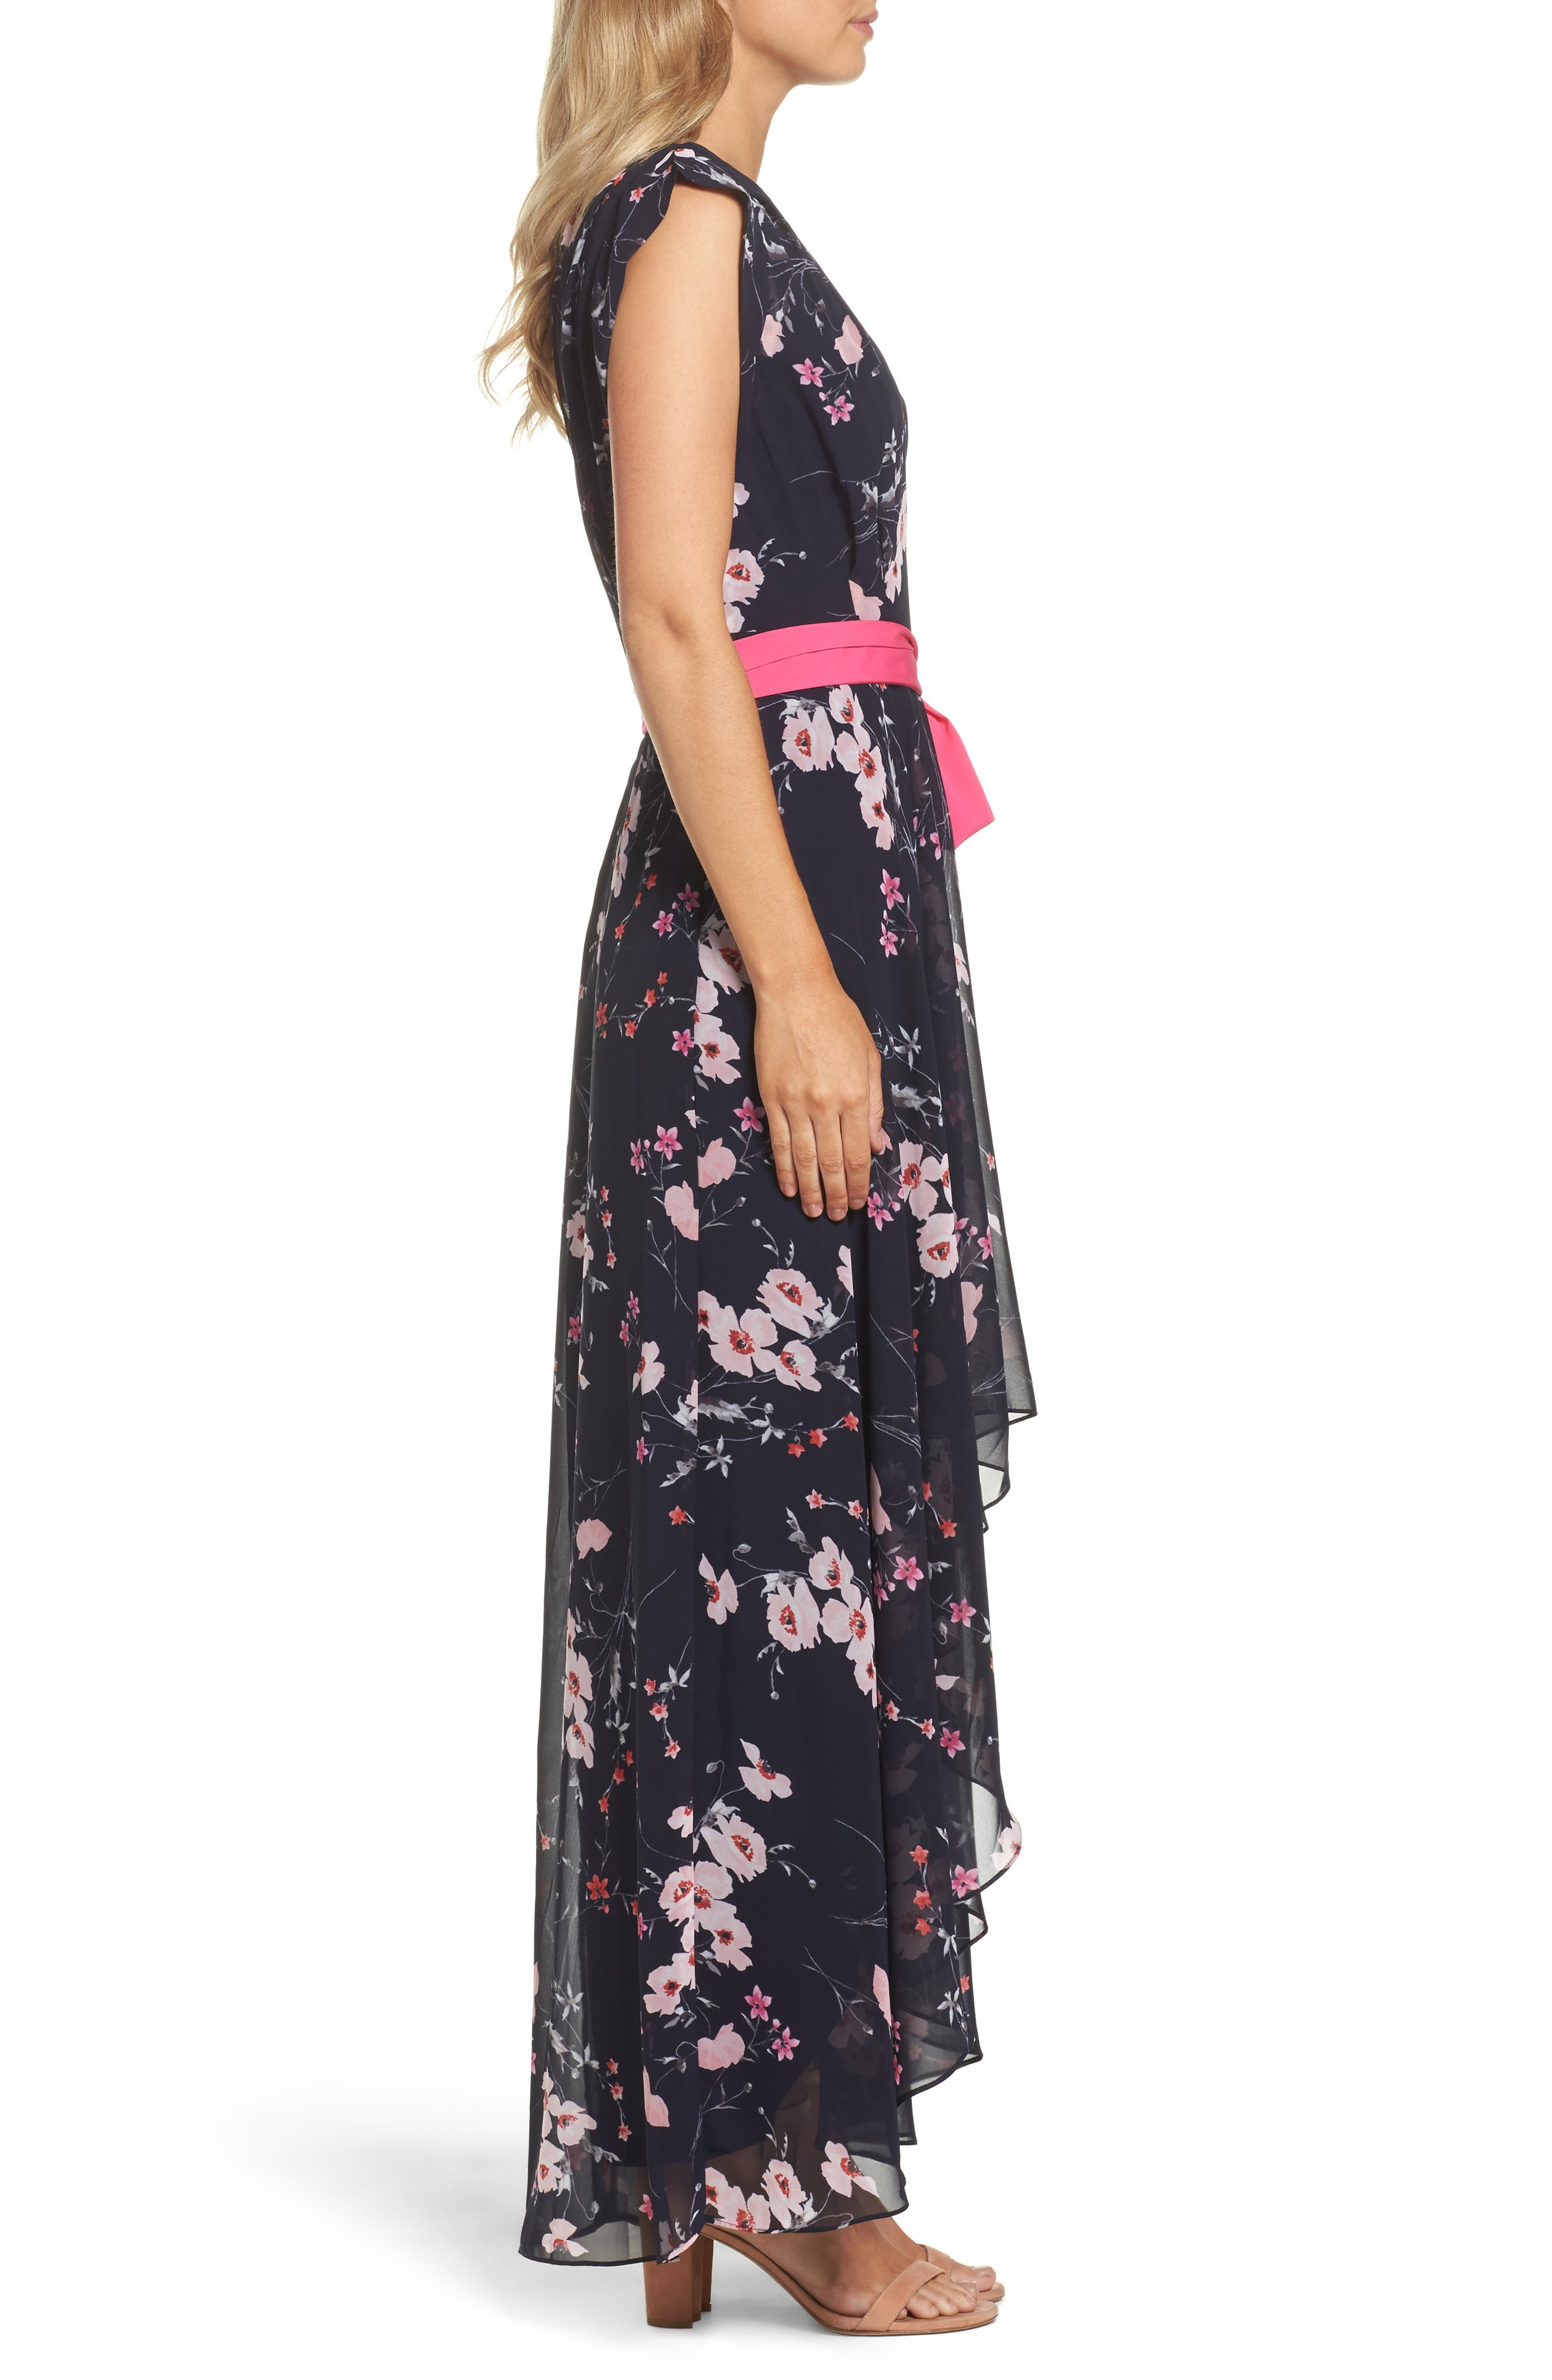 ELIZA J, High/Low Floral Faux Wrap Dress, Alternate thumbnail 4, color, NAVY/ PINK